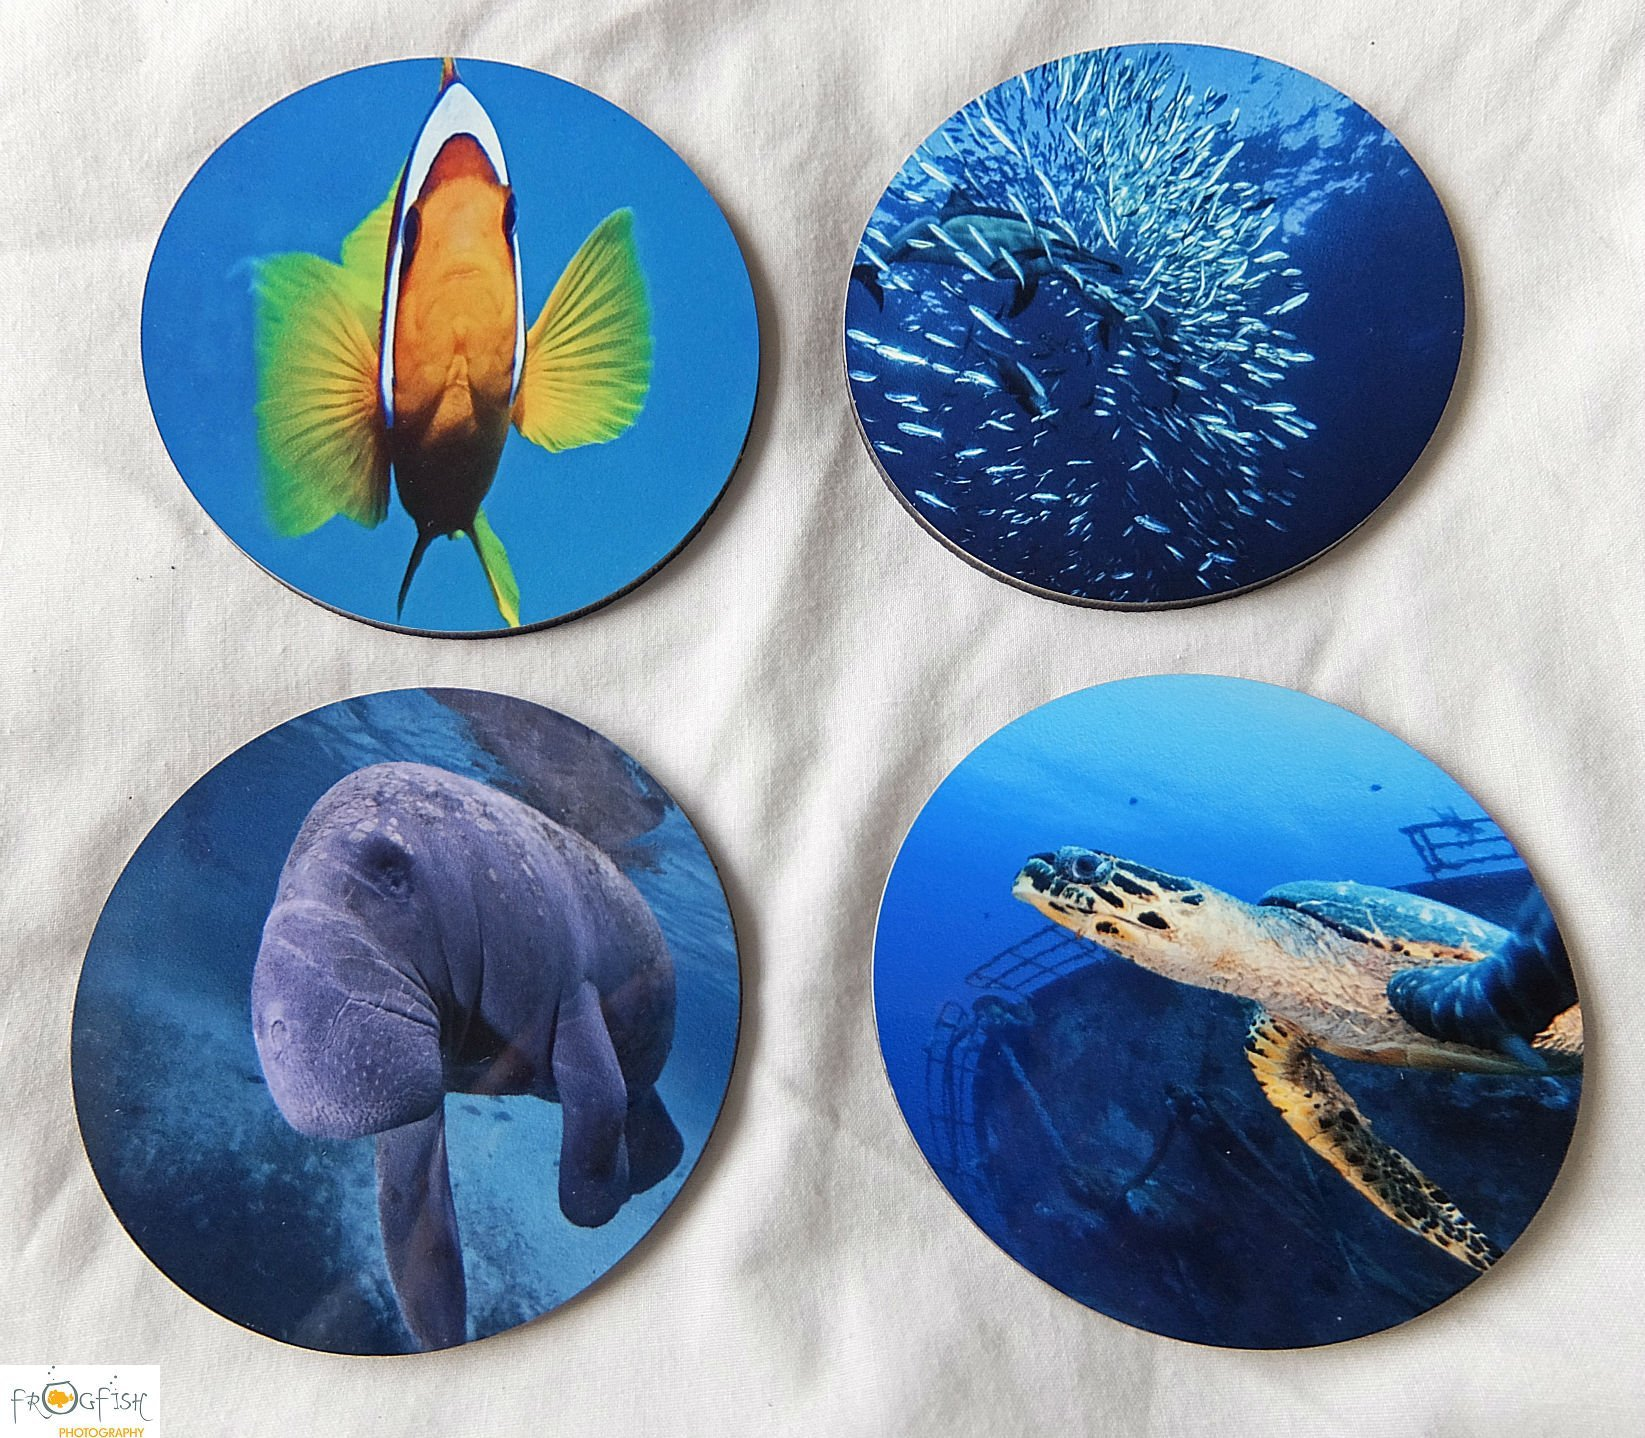 Underwater Images, Coasters, gifts, presents